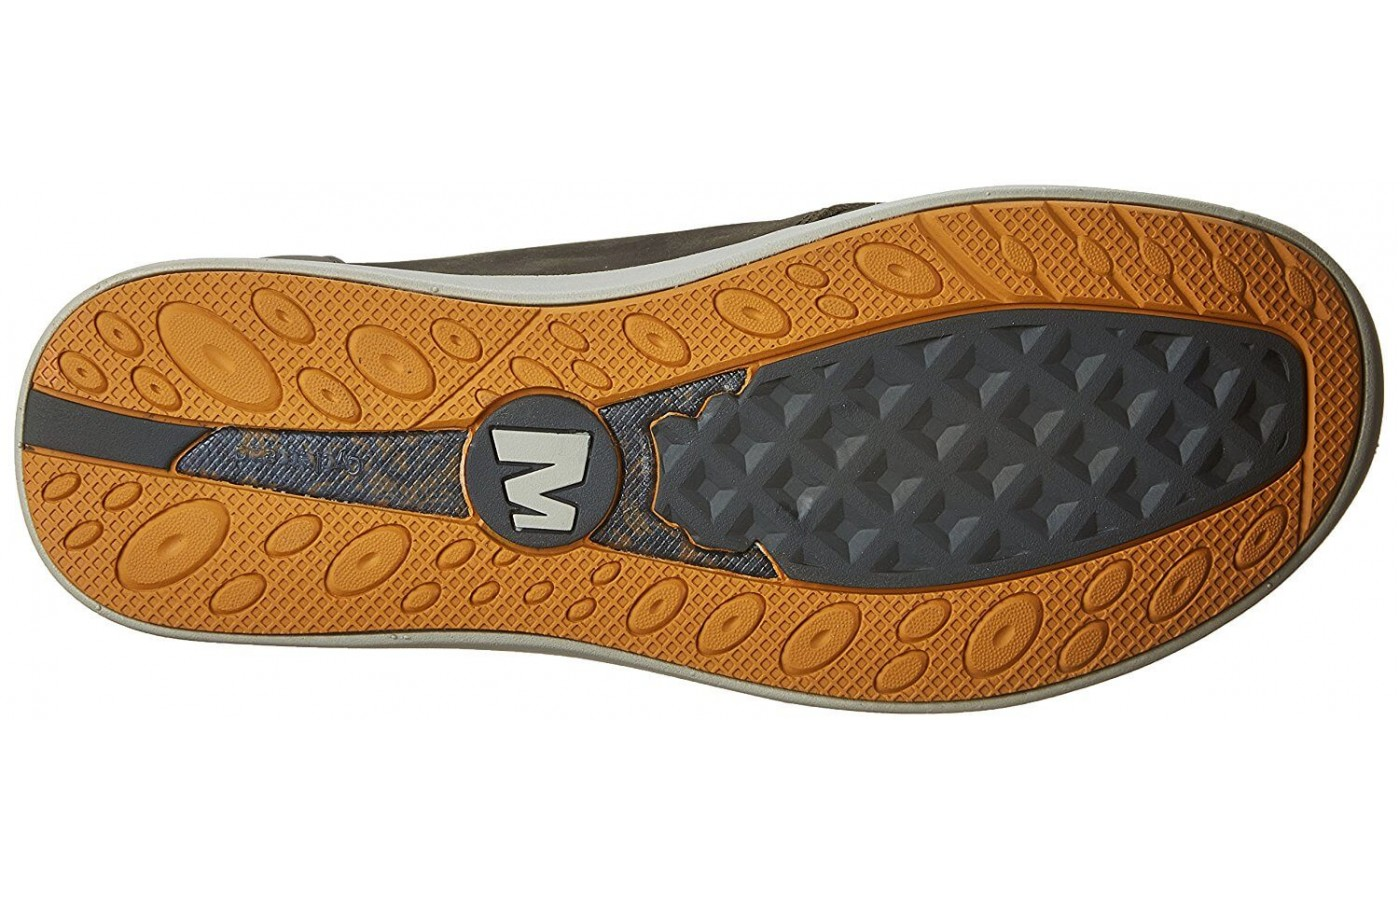 The Merrell Freewheel Lace features a CycleTread outsole